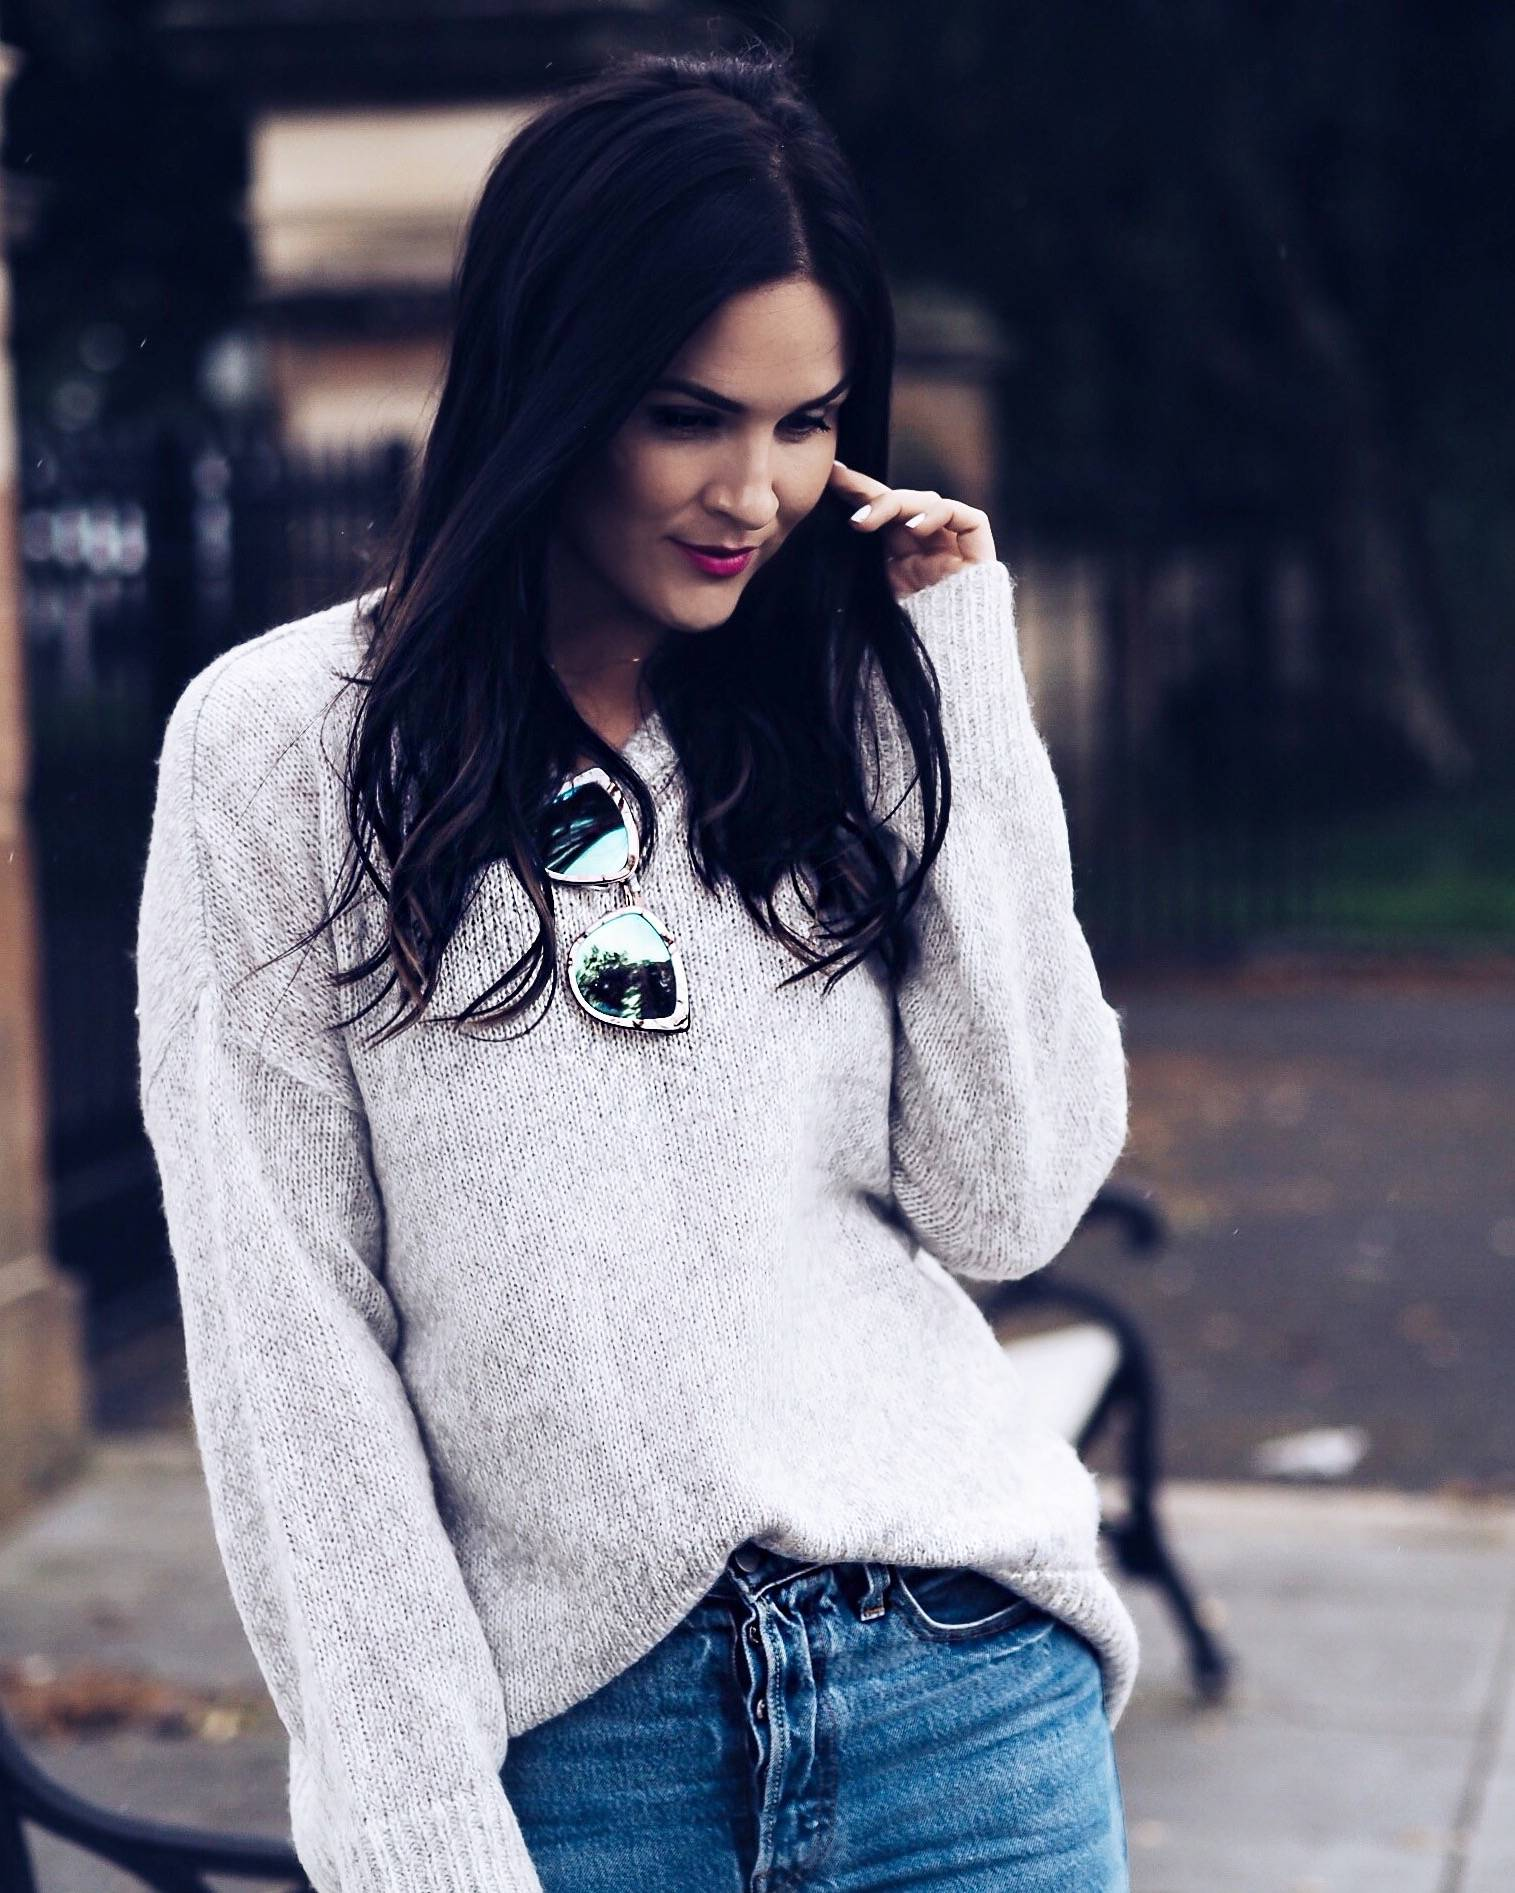 LAFOTKA-KNIT-WEATHER-STREET-STYLE-BLOGGER-AUTUMN